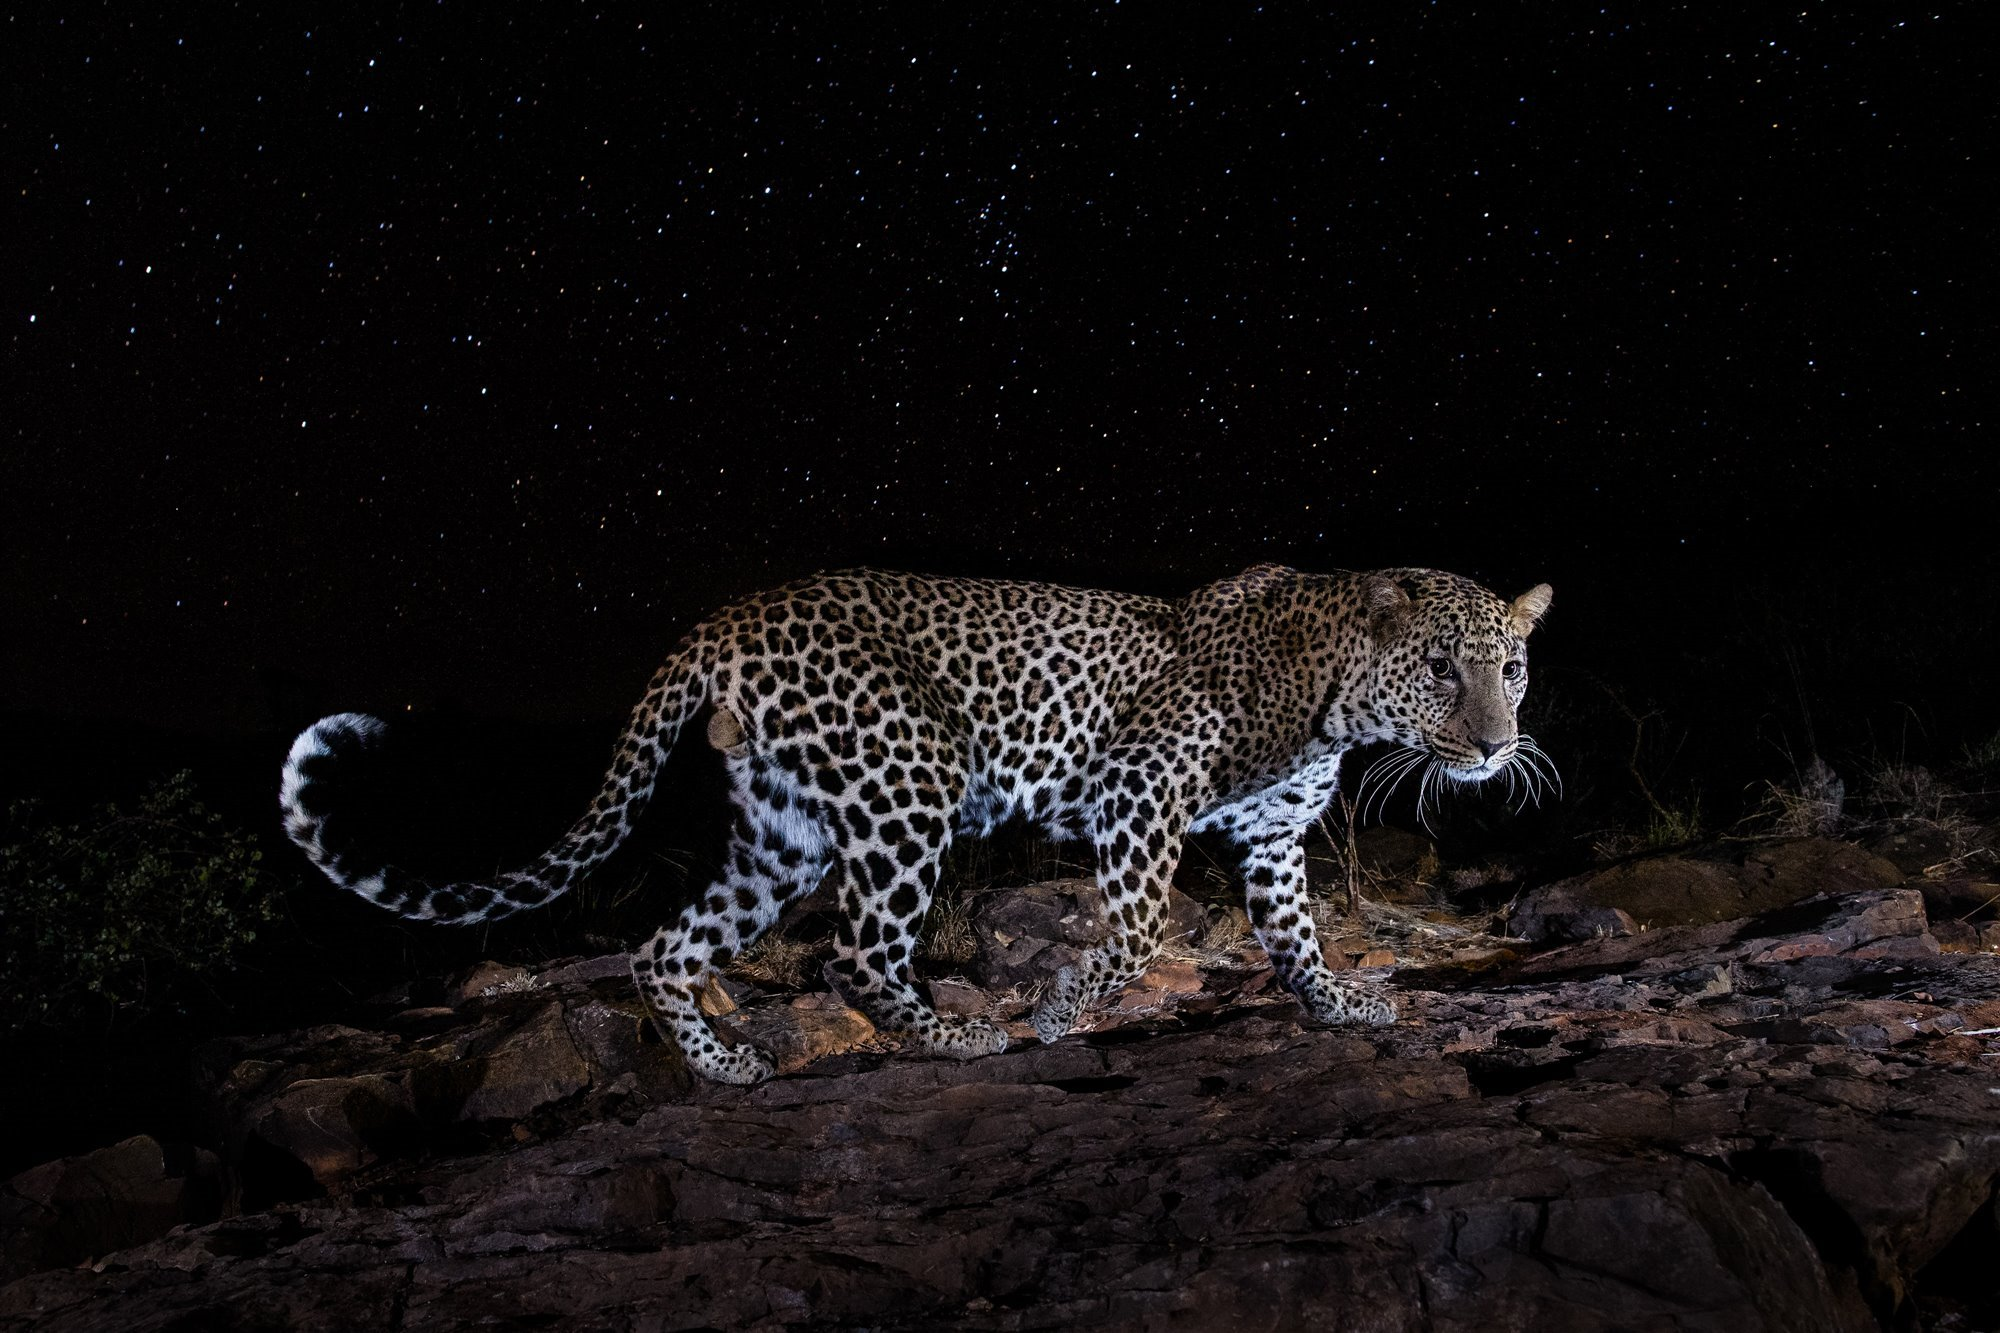 Starlit Leopard / Night of the Leopard II